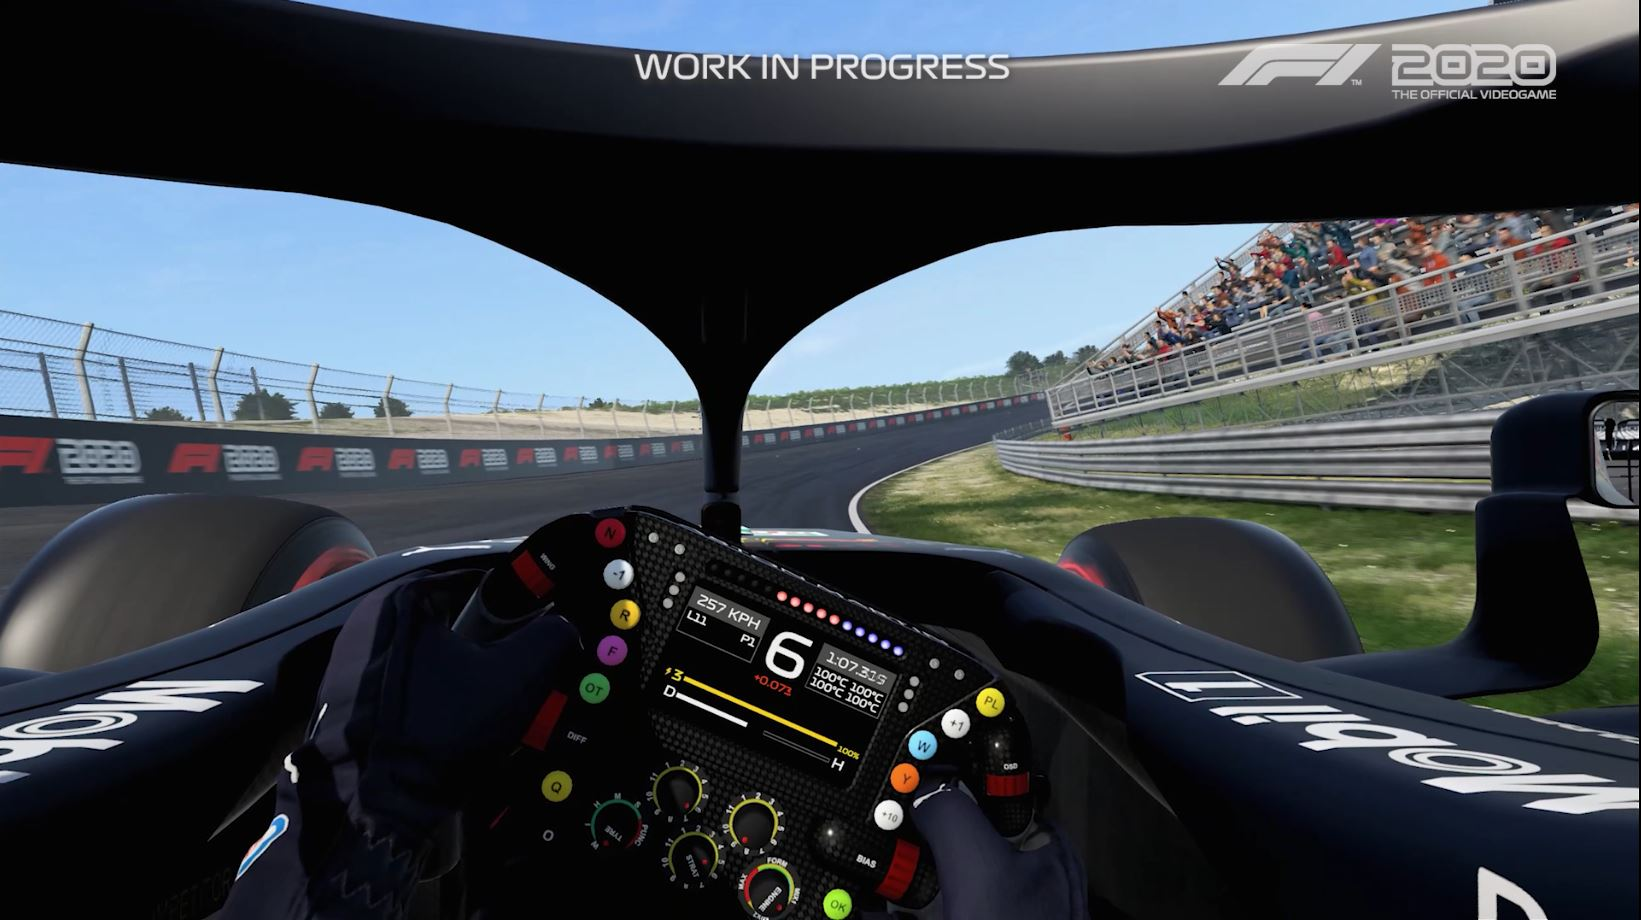 WATCH: First look at gameplay footage of Zandvoort on the F1 2020 ...